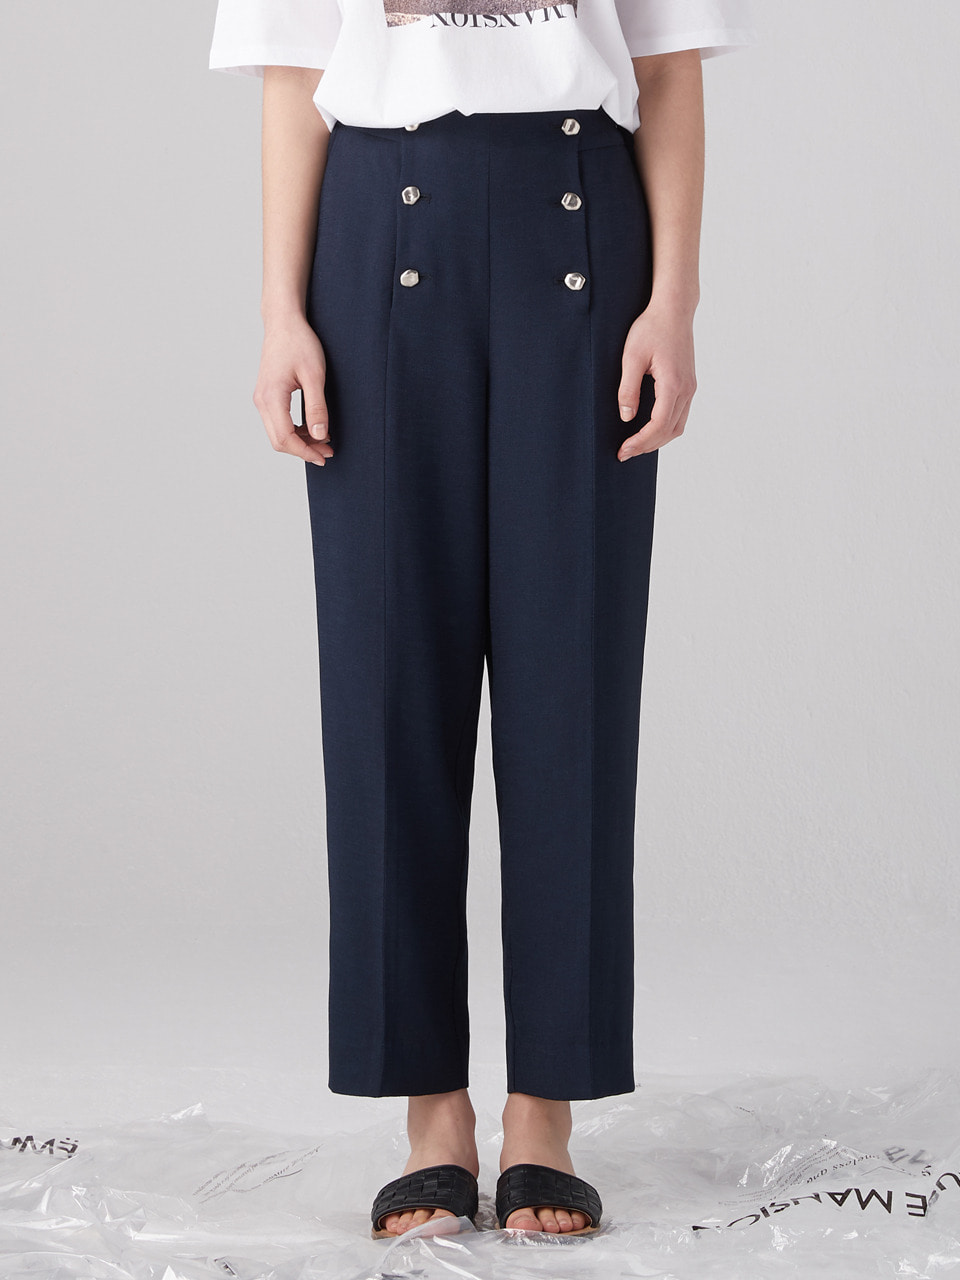 Double button pants - Navy